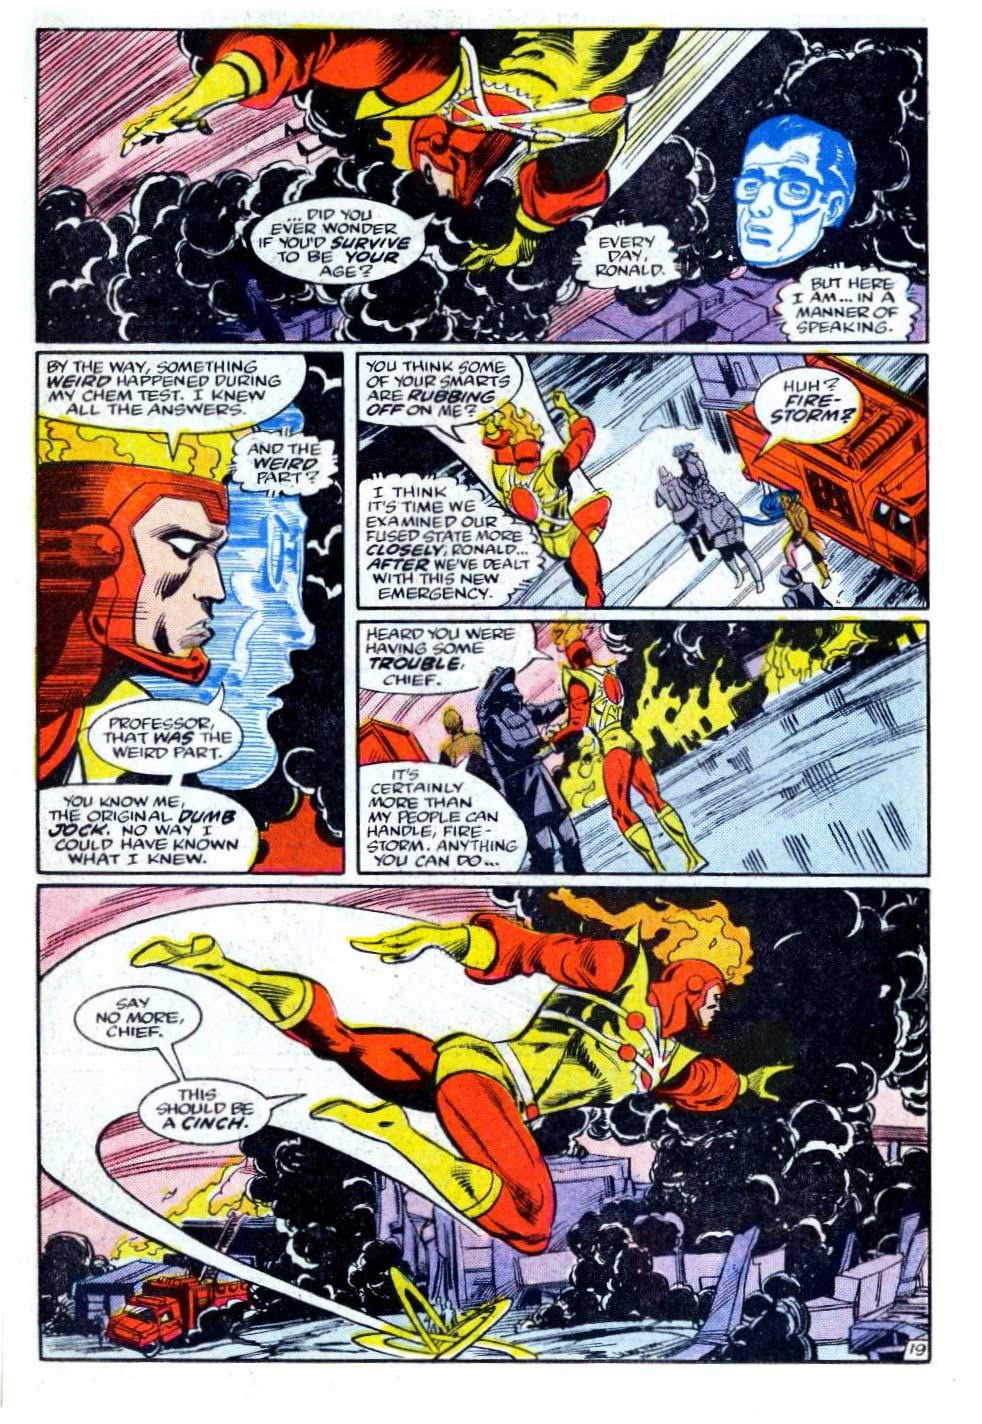 Fury of Firestorm #34 by Gerry Conway, Rafael Kayanan, and Alan Kupperberg